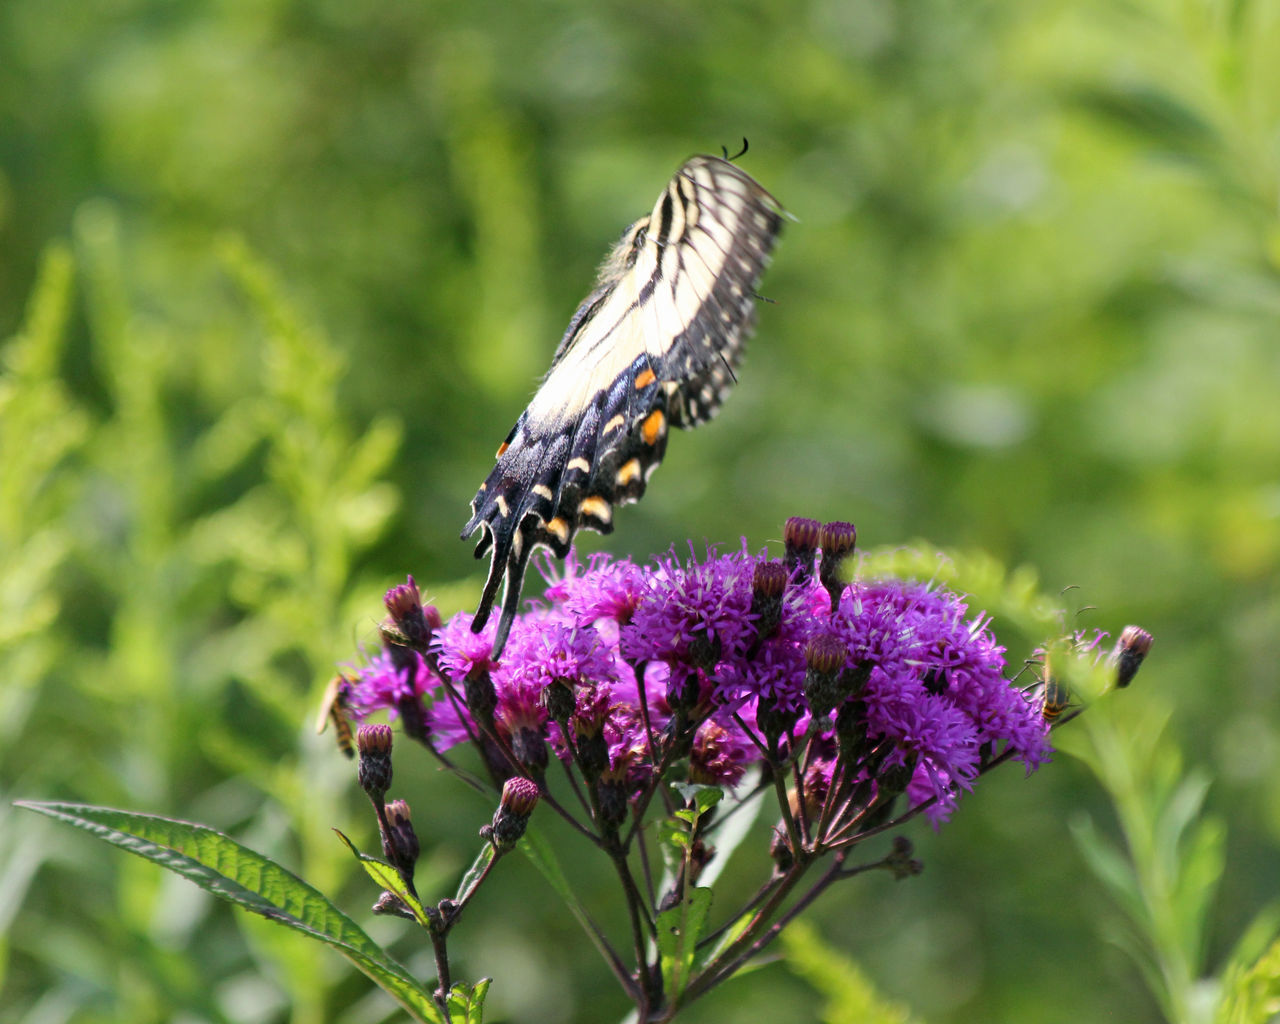 flower, one animal, animal themes, nature, animals in the wild, insect, purple, growth, plant, fragility, beauty in nature, freshness, focus on foreground, day, no people, animal wildlife, pollination, outdoors, close-up, butterfly - insect, thistle, flower head, perching